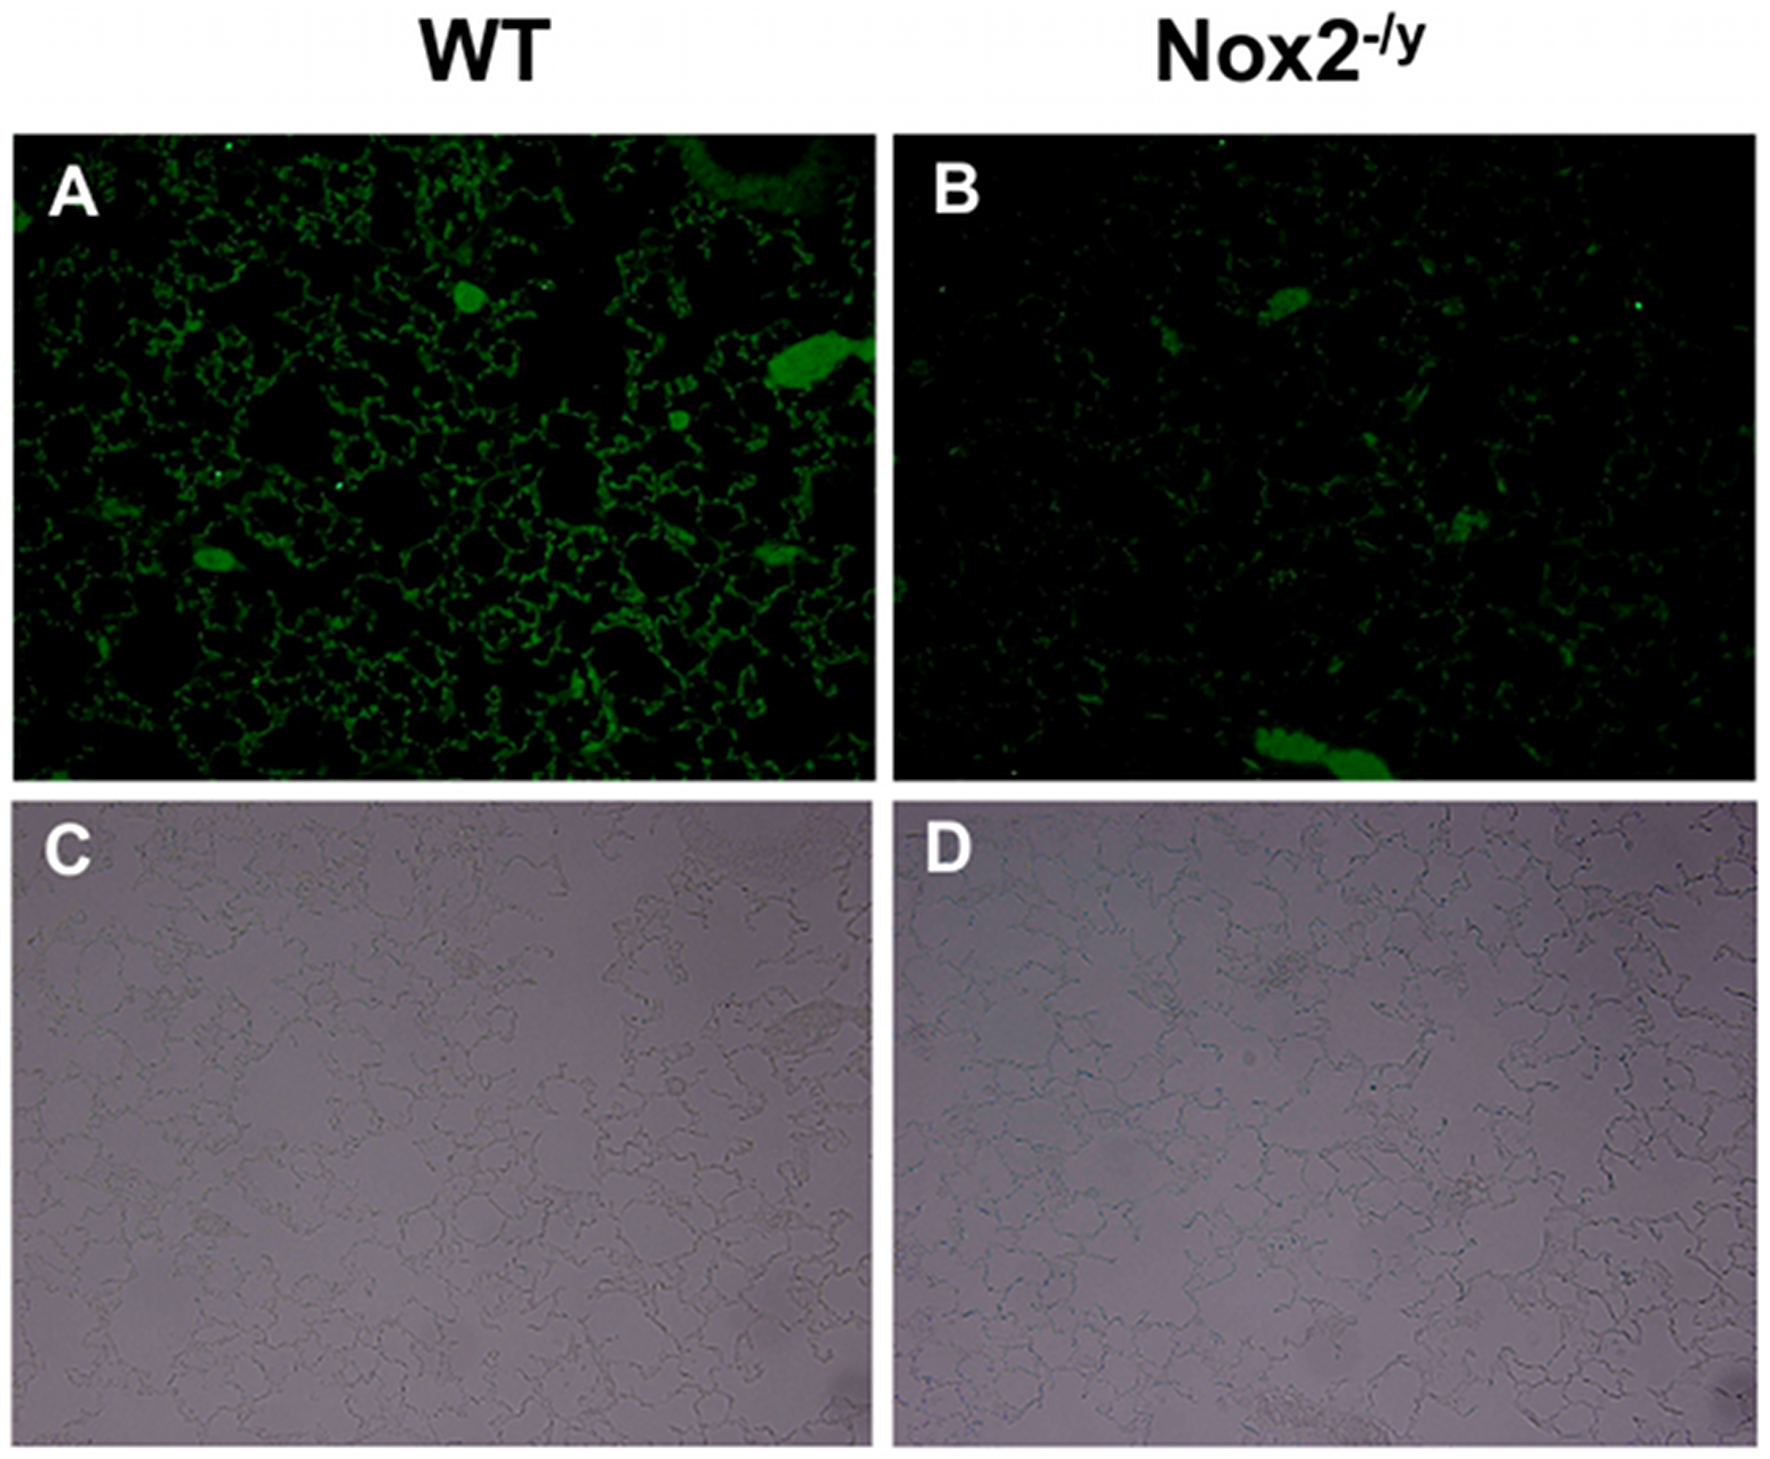 Cleaved caspase 3 immunofluorescence to assess lung alveolar epithelial apoptosis.